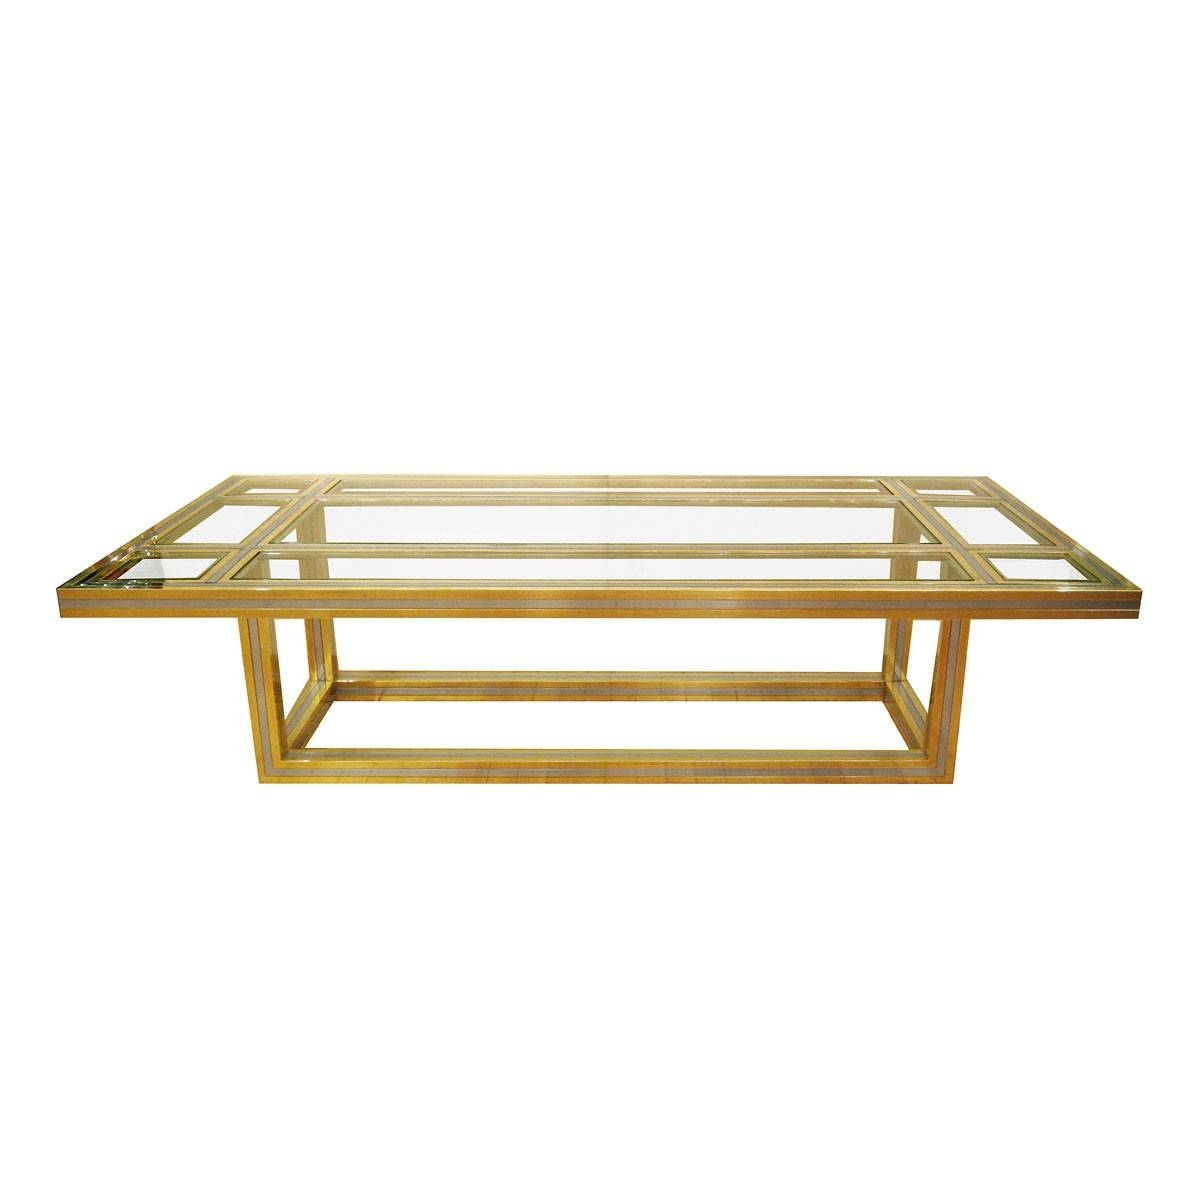 Furniture: Brass Glass Coffee Table Design Ideas Brass Glass regarding Antique Brass Glass Coffee Tables (Image 18 of 37)